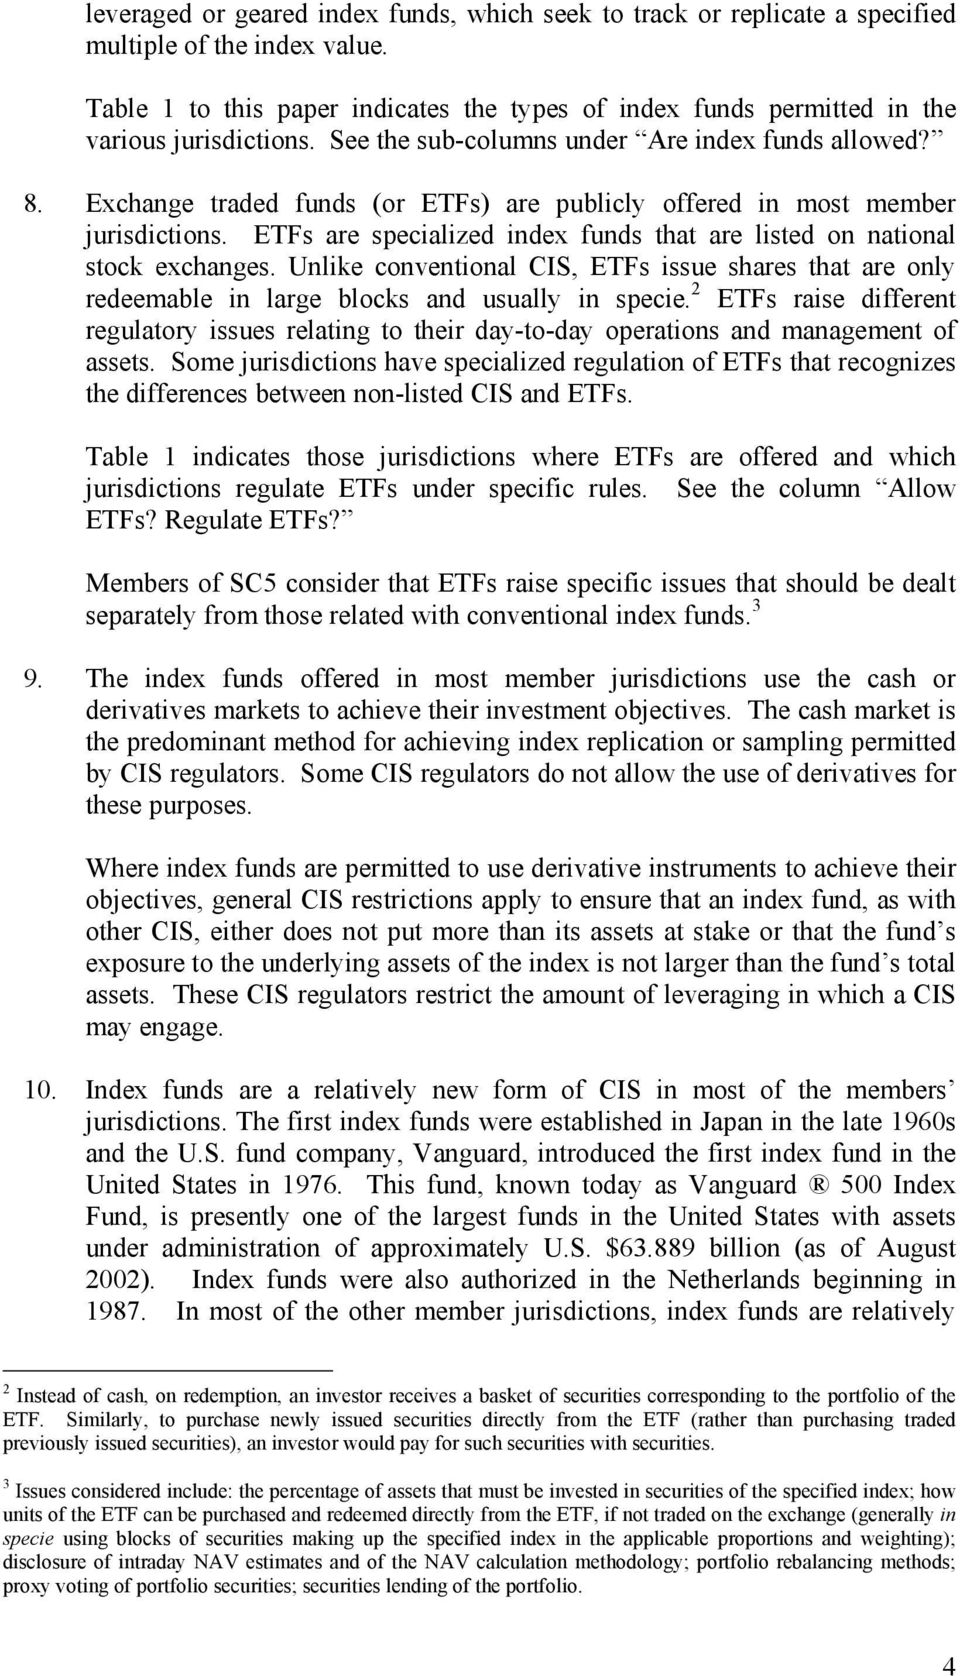 Exchange traded funds (or ETFs) are publicly offered in most member jurisdictions. ETFs are specialized index funds that are listed on national stock exchanges.